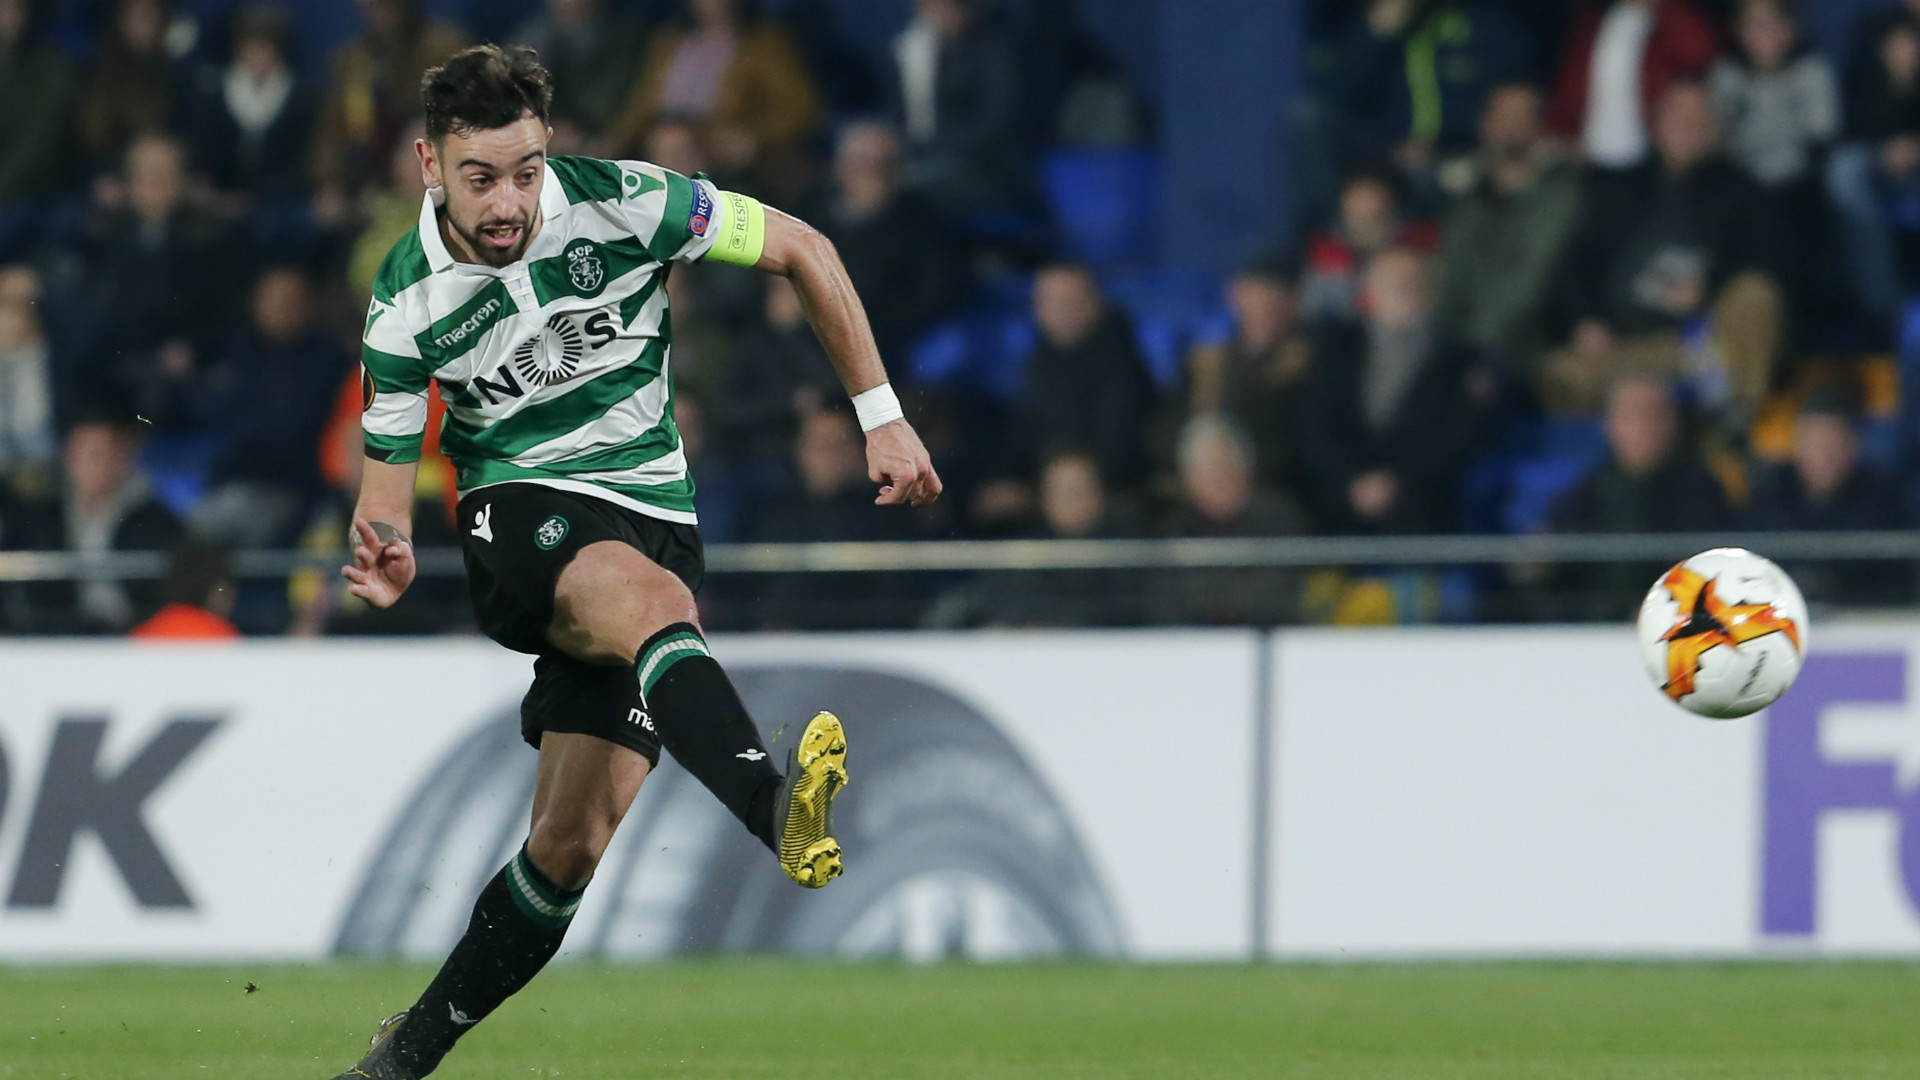 Transfer News: Sporting Coach Wants Bruno Fernandes To